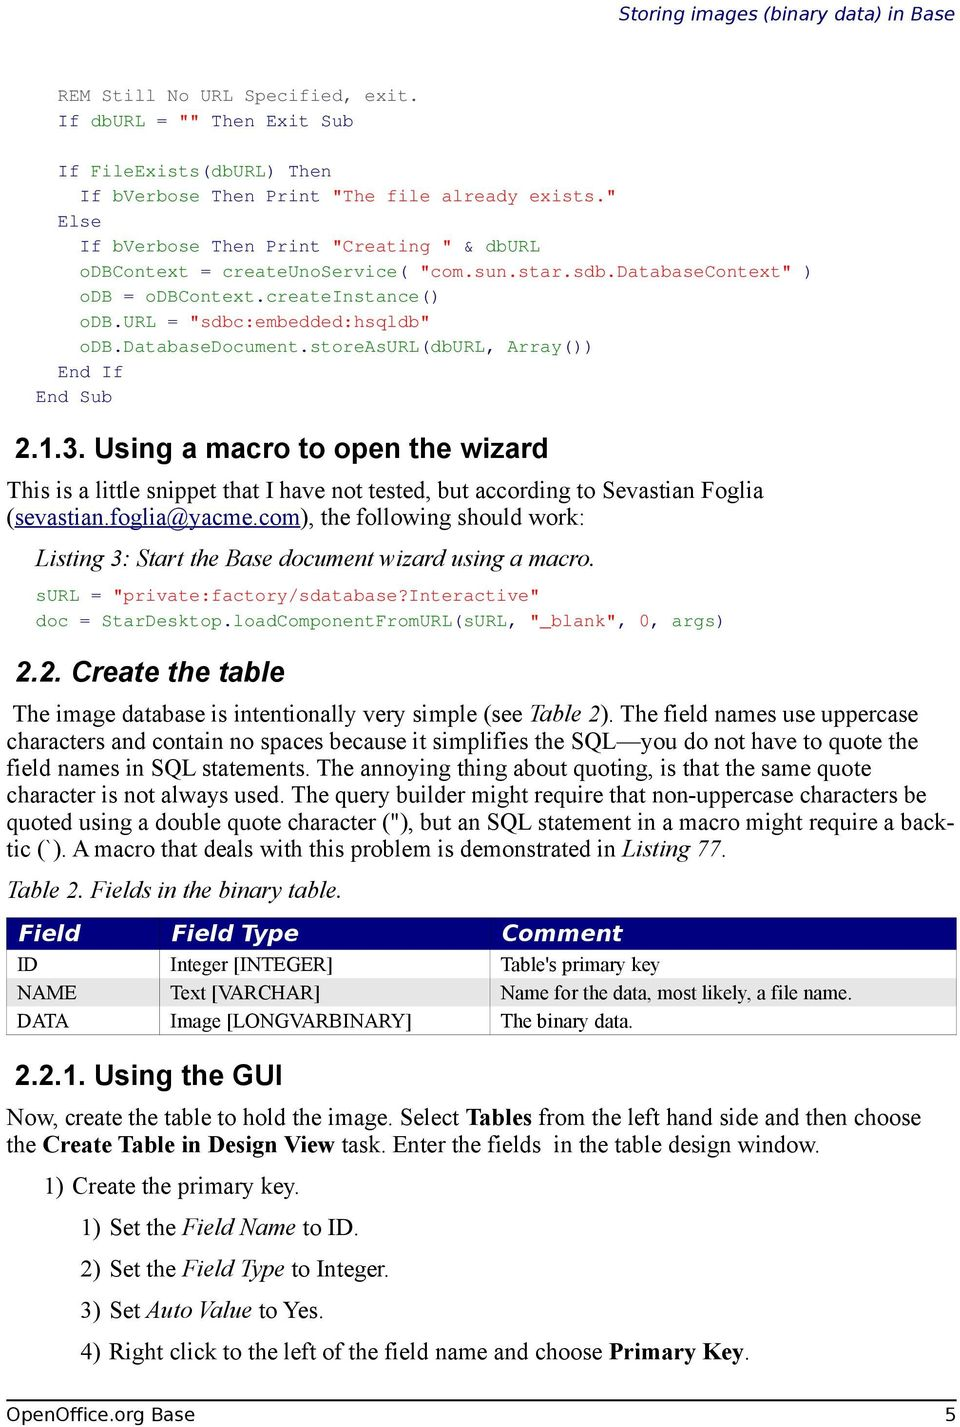 databasedocument.storeasurl(dburl, Array()) End Sub 2.1.3. Using a macro to open the wizard This is a little snippet that I have not tested, but according to Sevastian Foglia (sevastian.foglia@yacme.